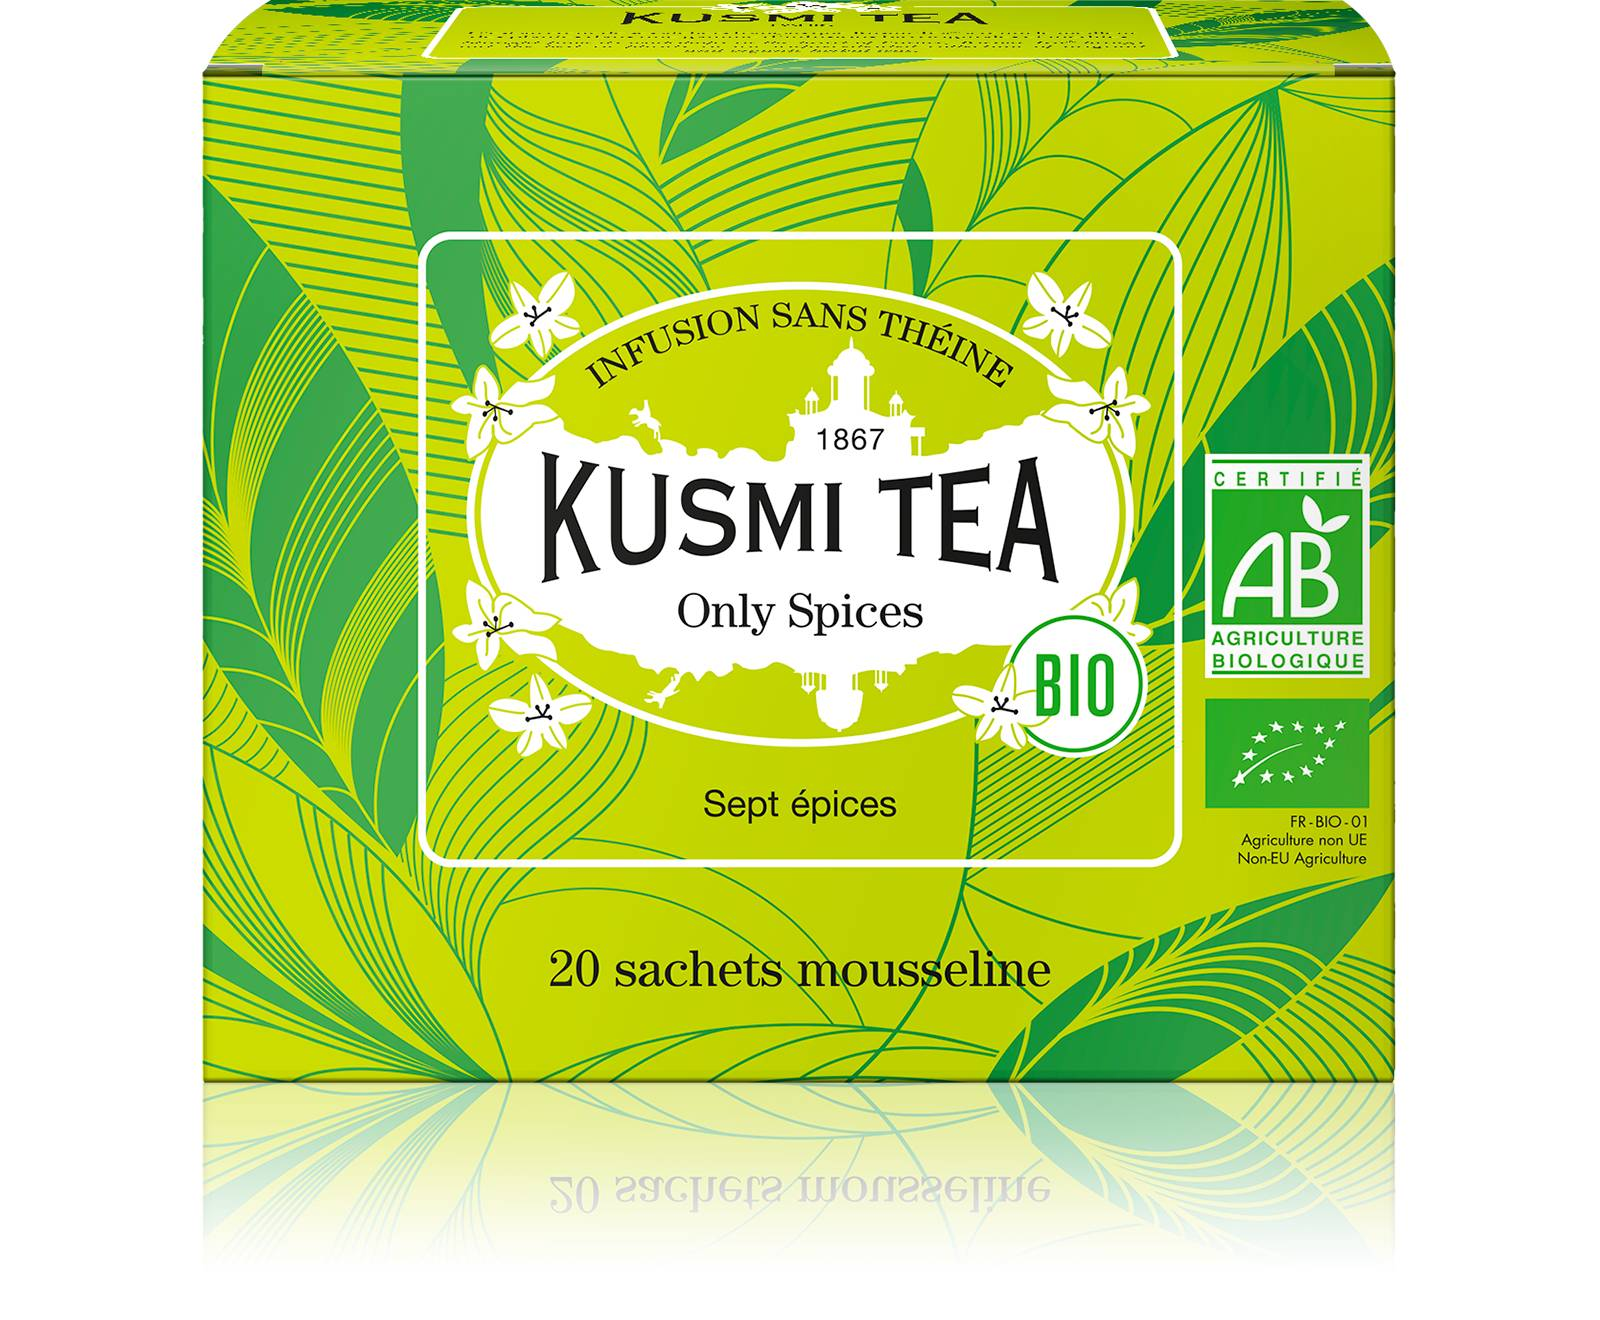 KUSMI TEA Only Spices (Infusion bio) Kusmi Tea